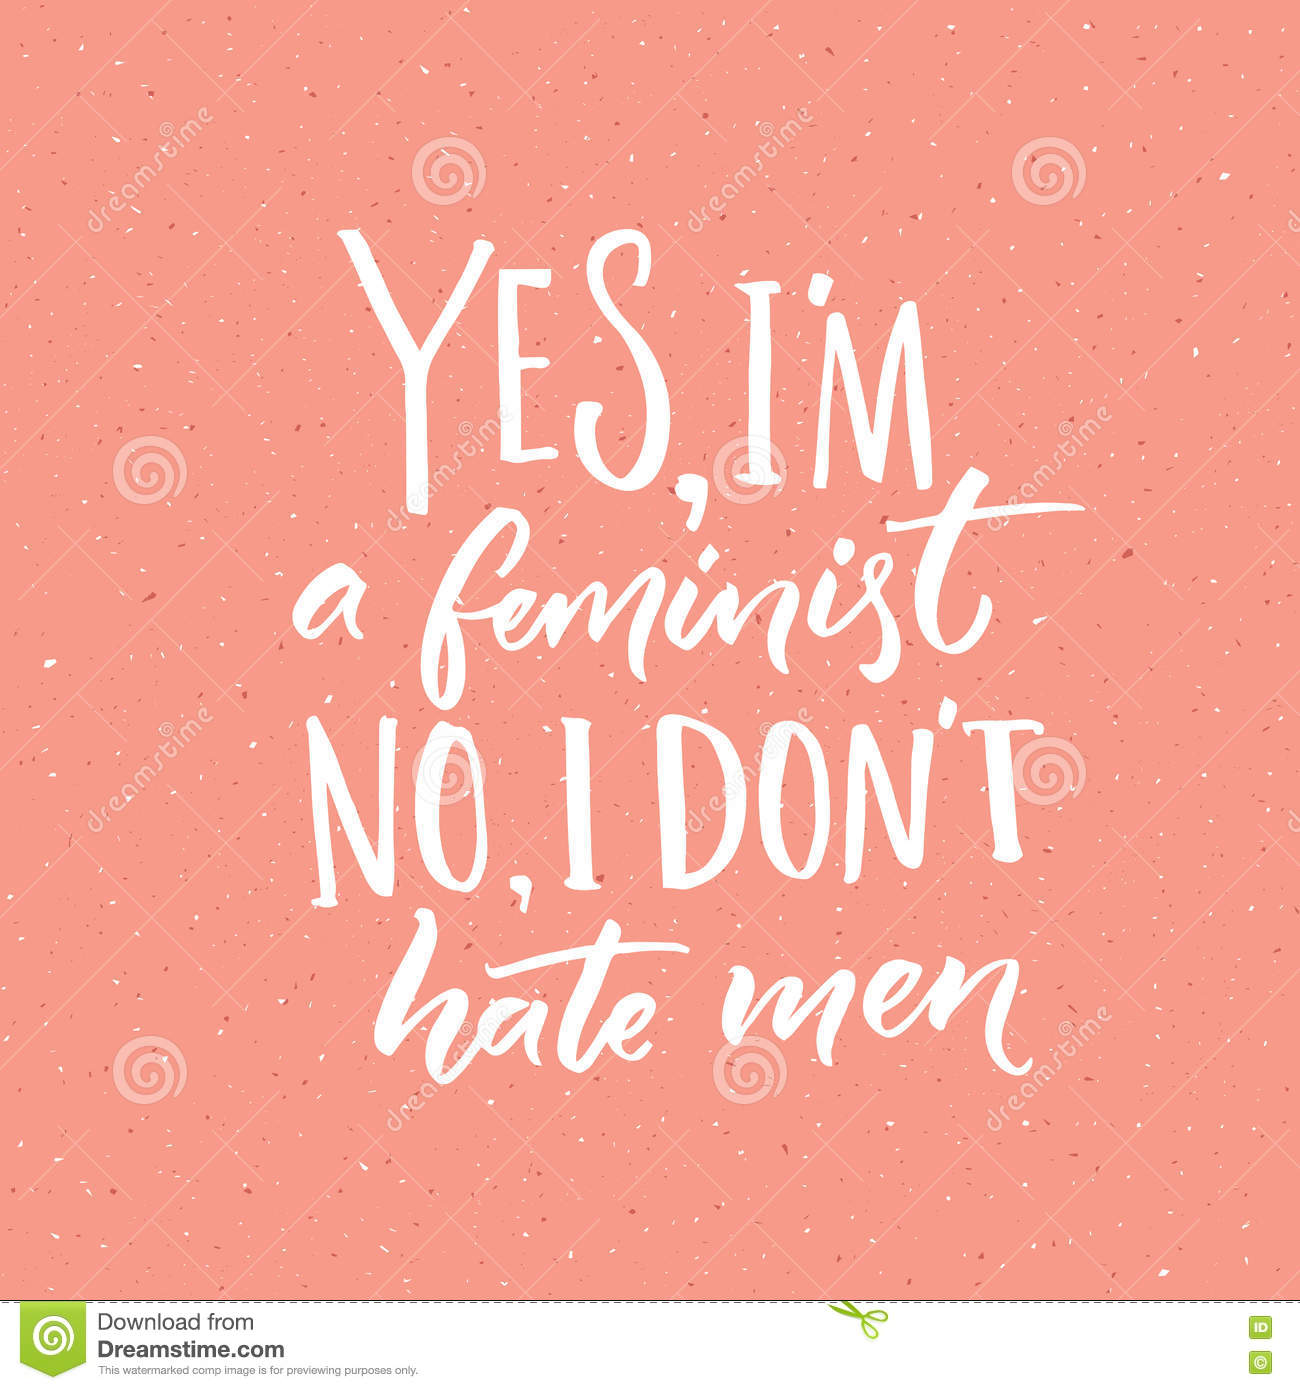 Stock Quote For T: Yes, I'm A Feminist. No, I Don't Hate Men. Feminism Slogan